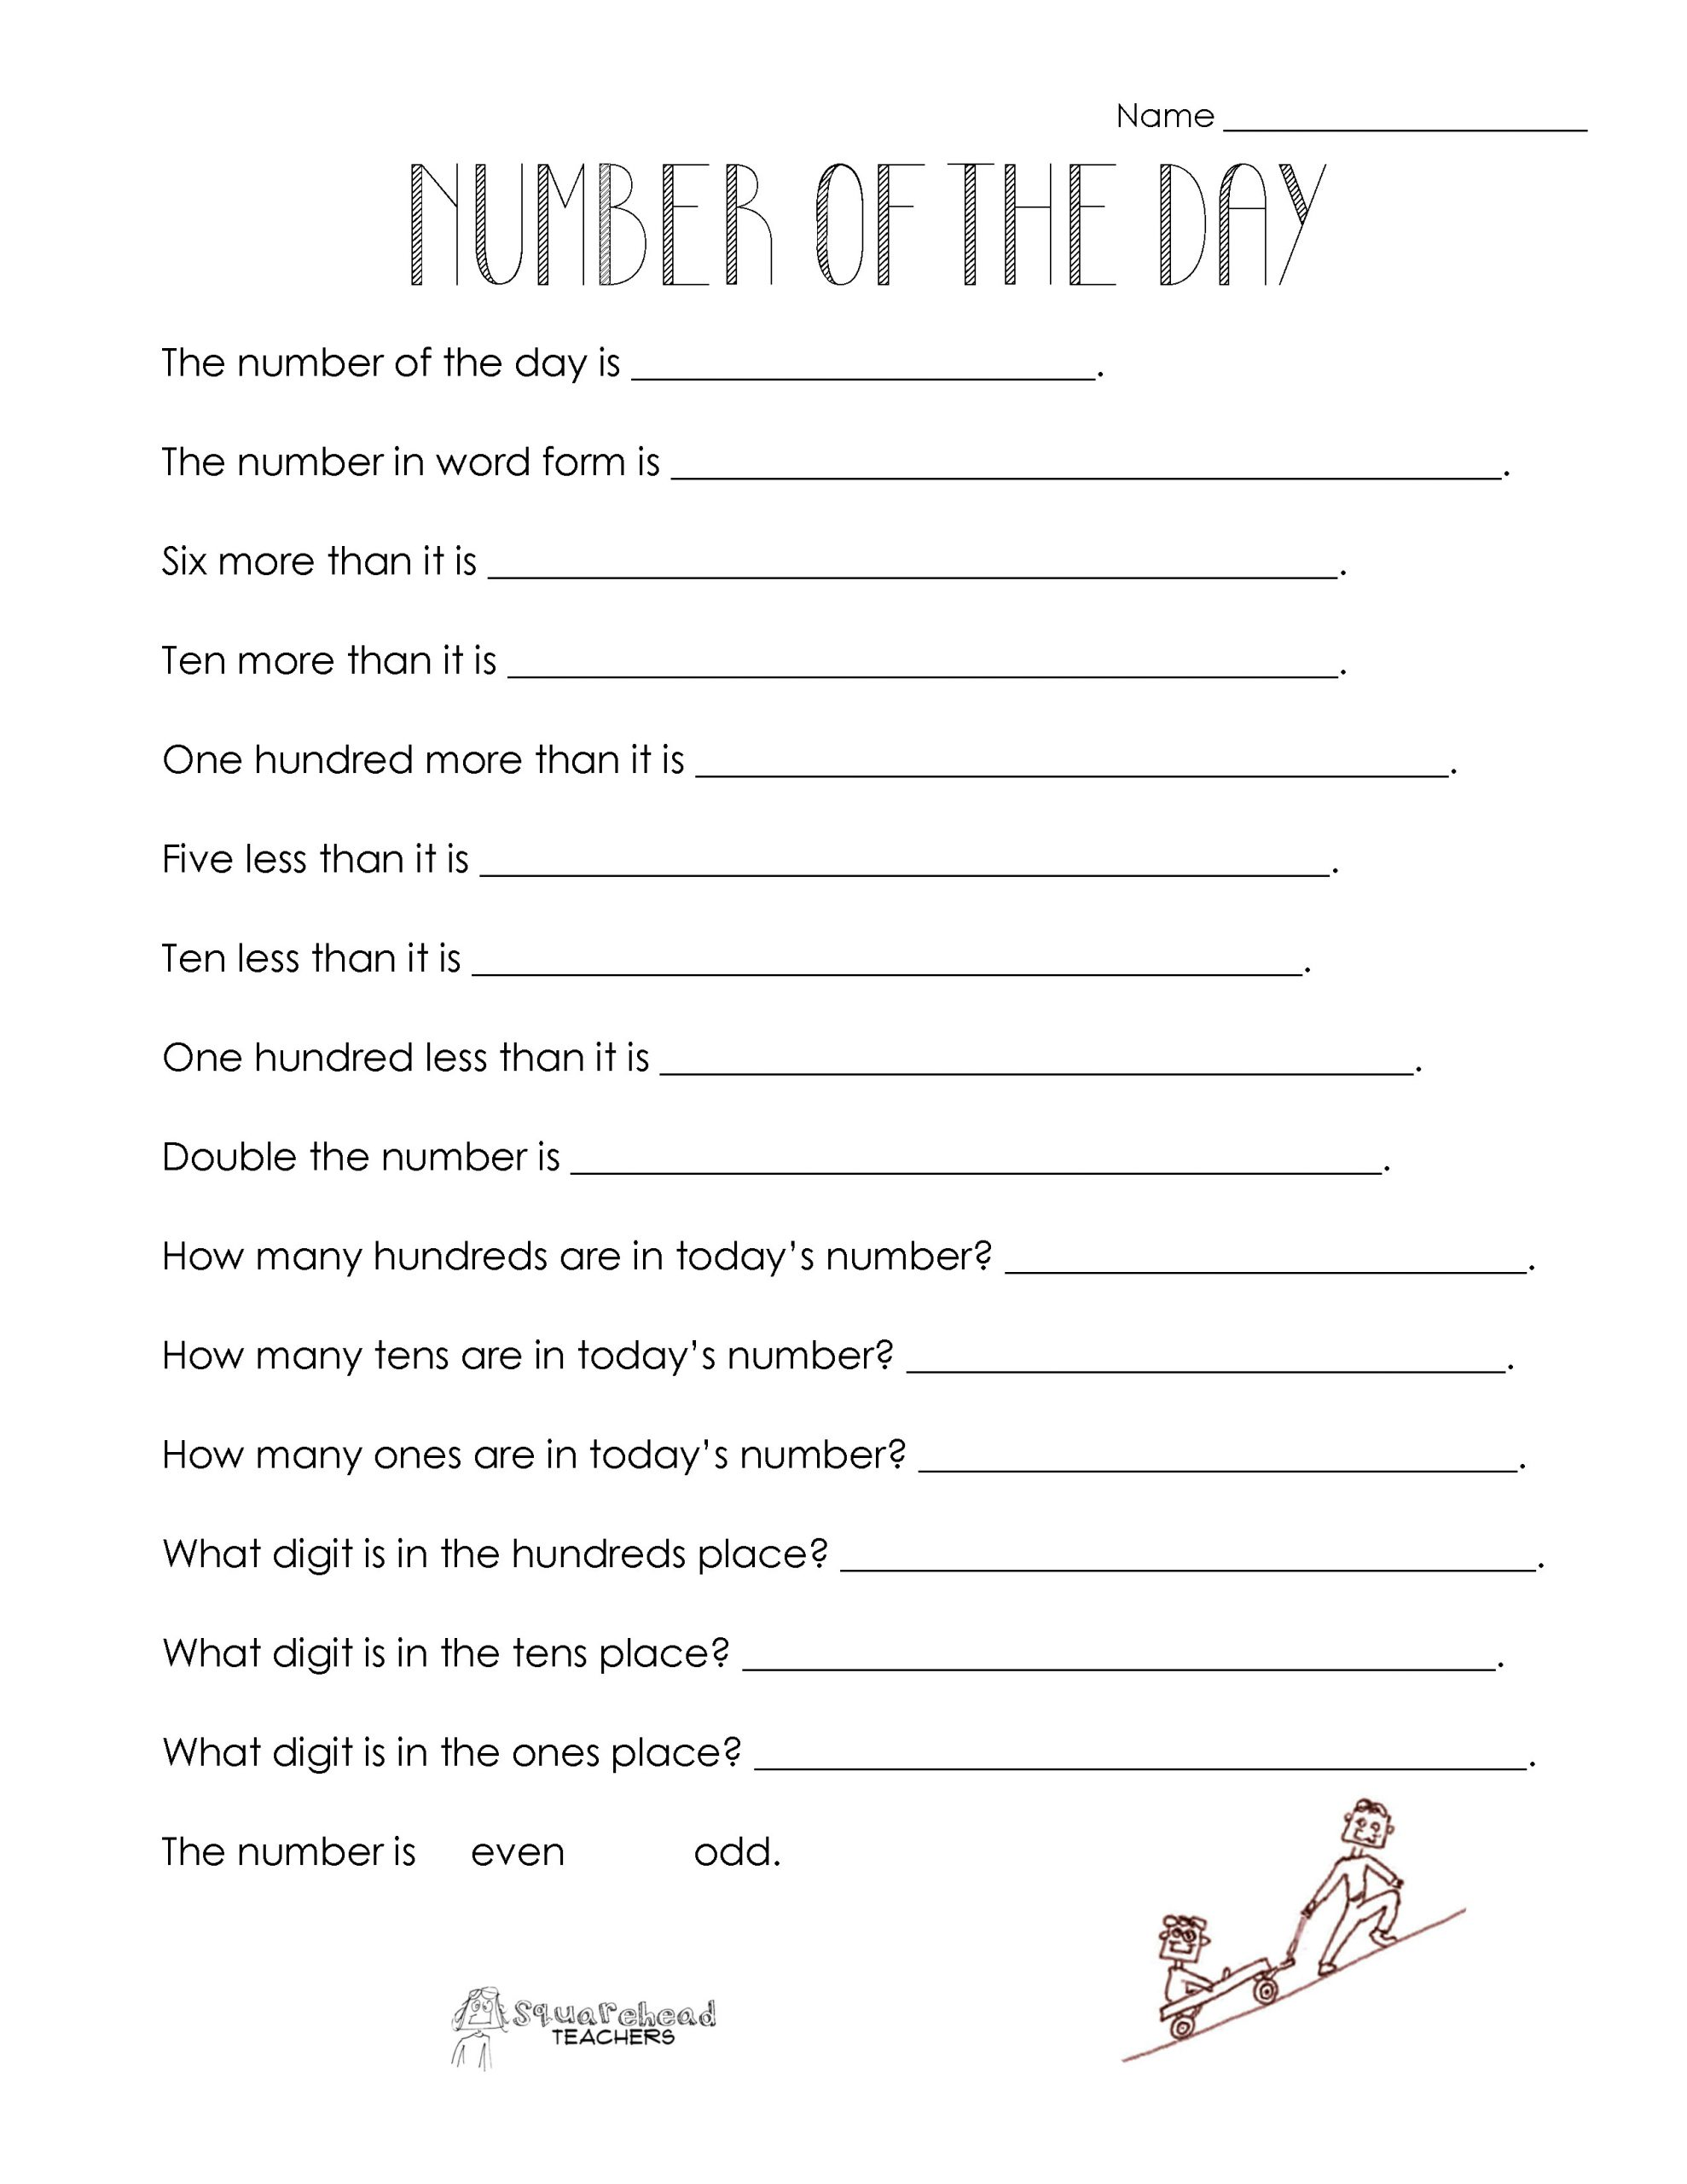 Pattern Worksheets 4th Grade Number Of the Day Worksheet Collection